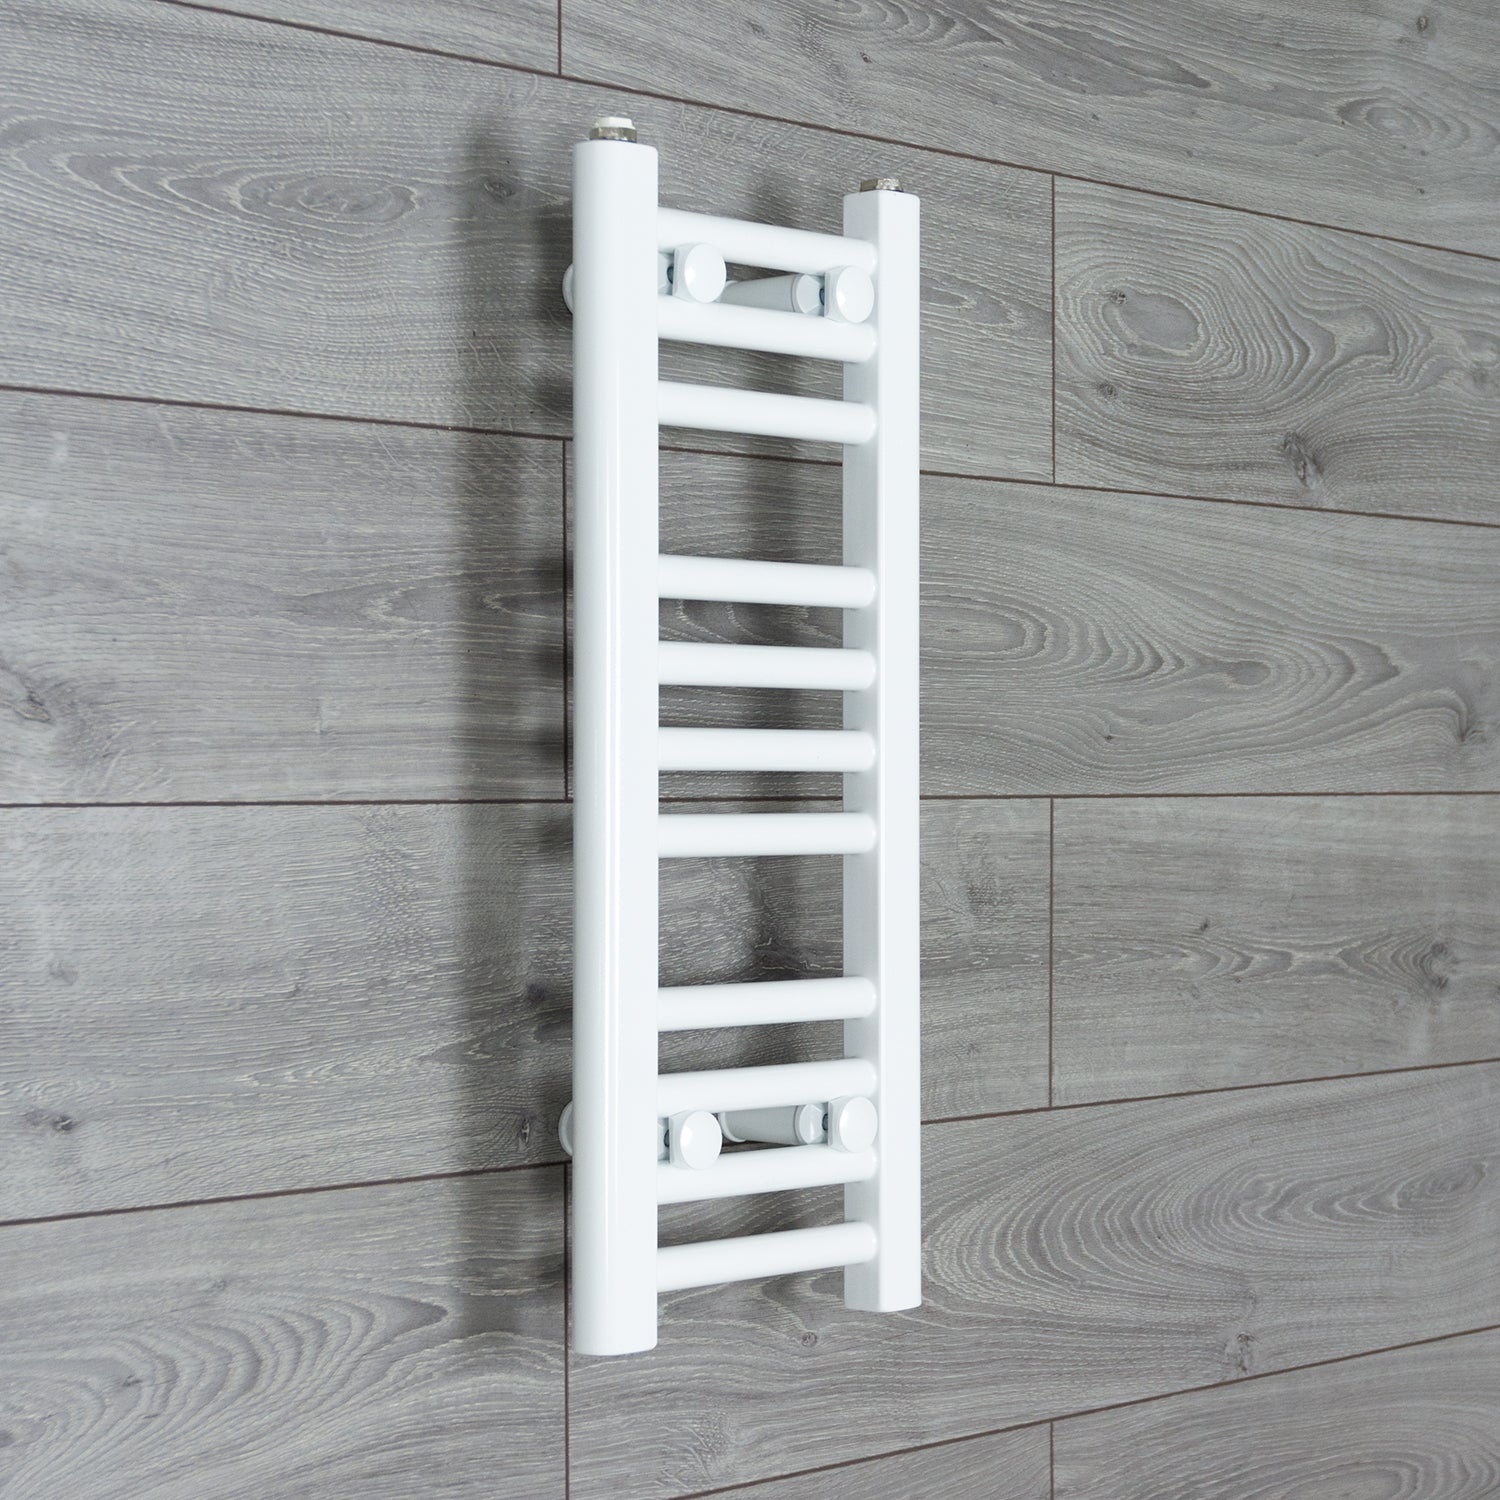 200x600mm Flat Chrome Electric Element Towel Rail